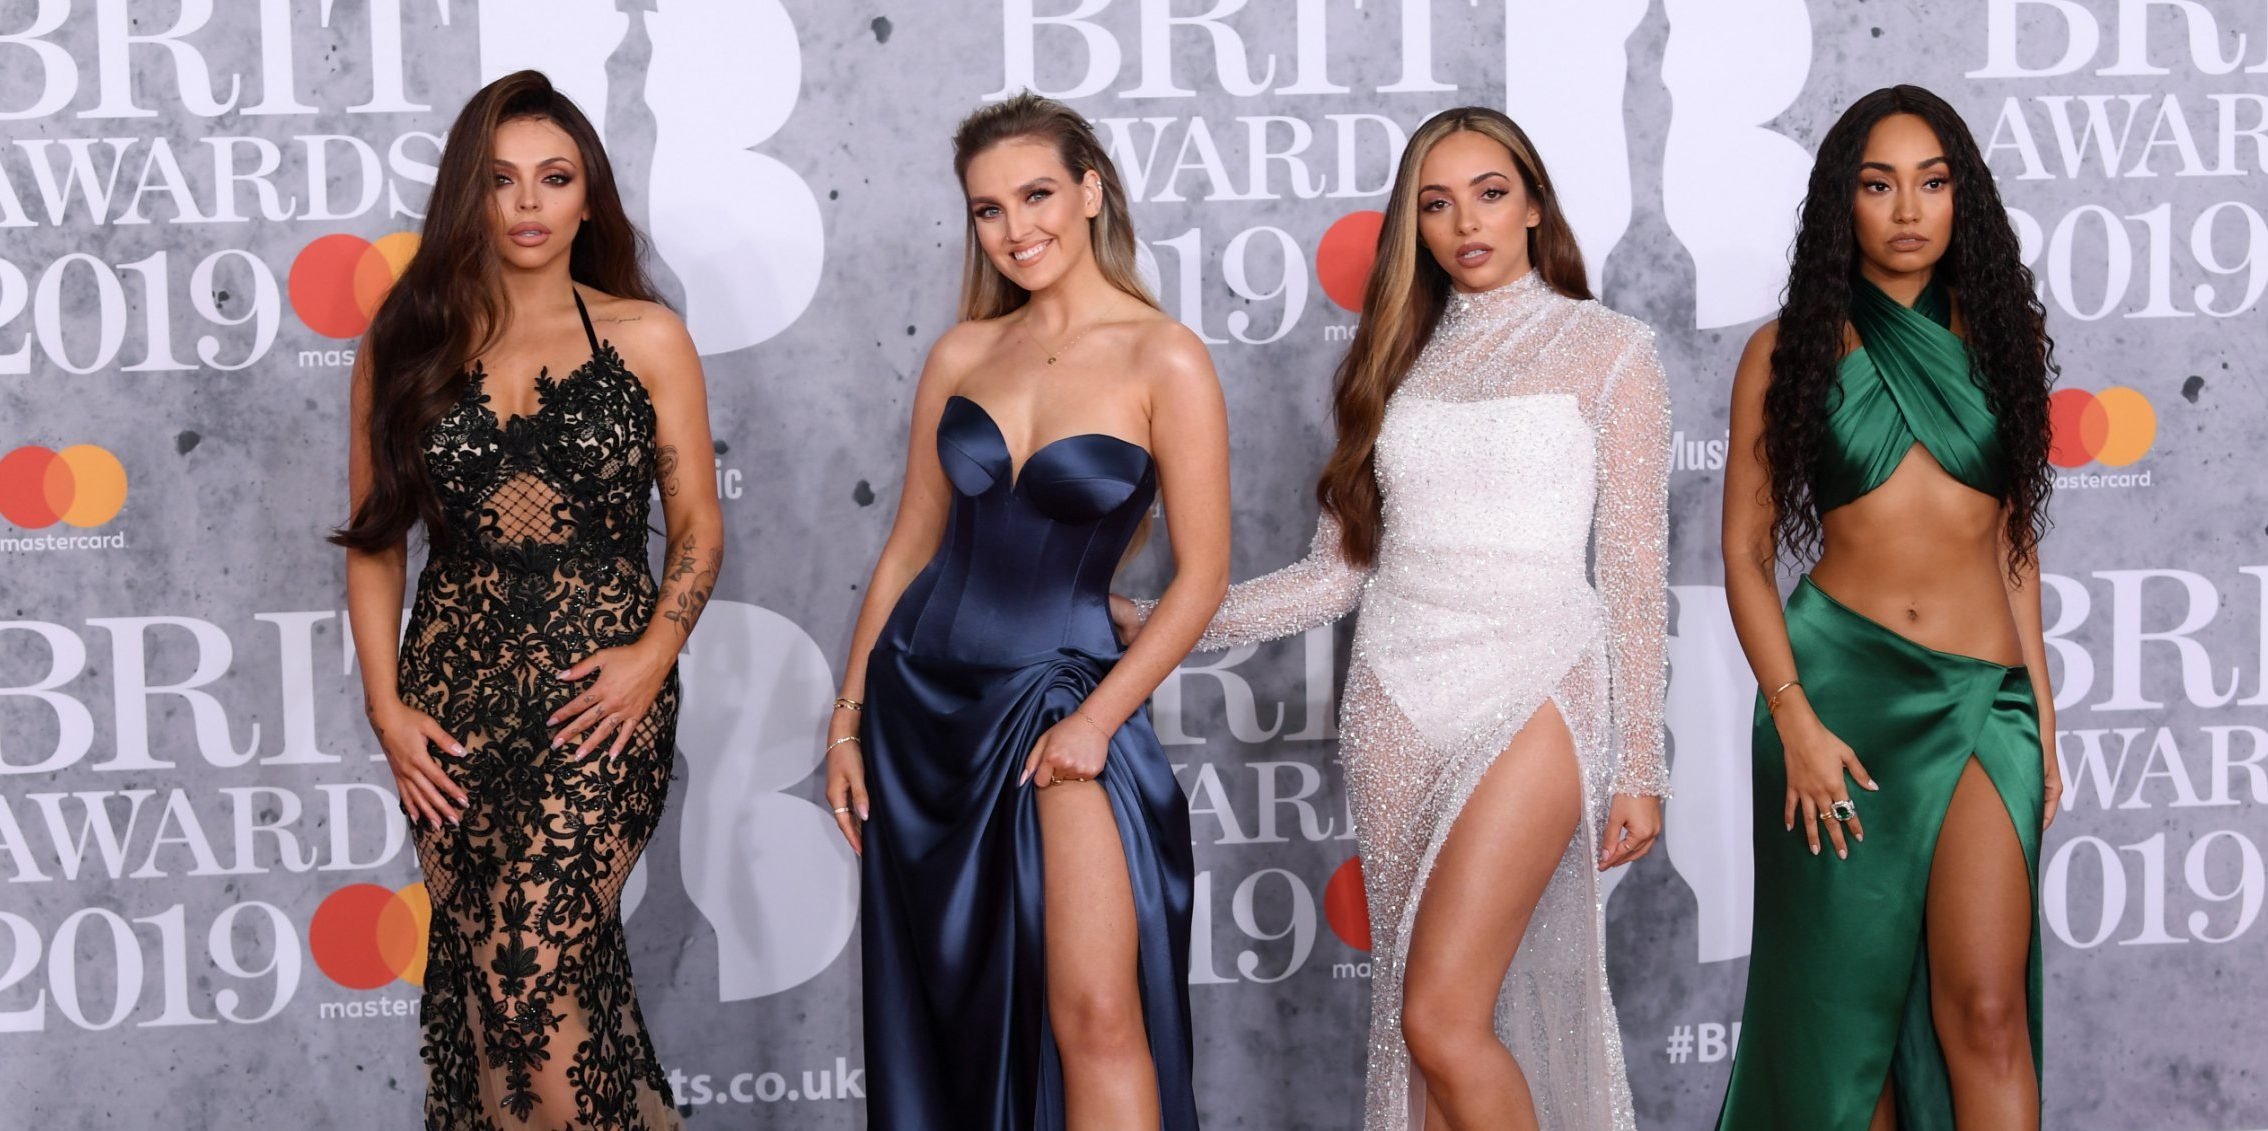 Mandatory Credit: Photo by David Fisher/REX (10110752ei) Little Mix - Jesy Nelson, Perrie Edwards, Jade Thirlwall and Leigh-Anne Pinnock 39th Brit Awards, Arrivals, The O2 Arena, London, UK - 20 Feb 2019